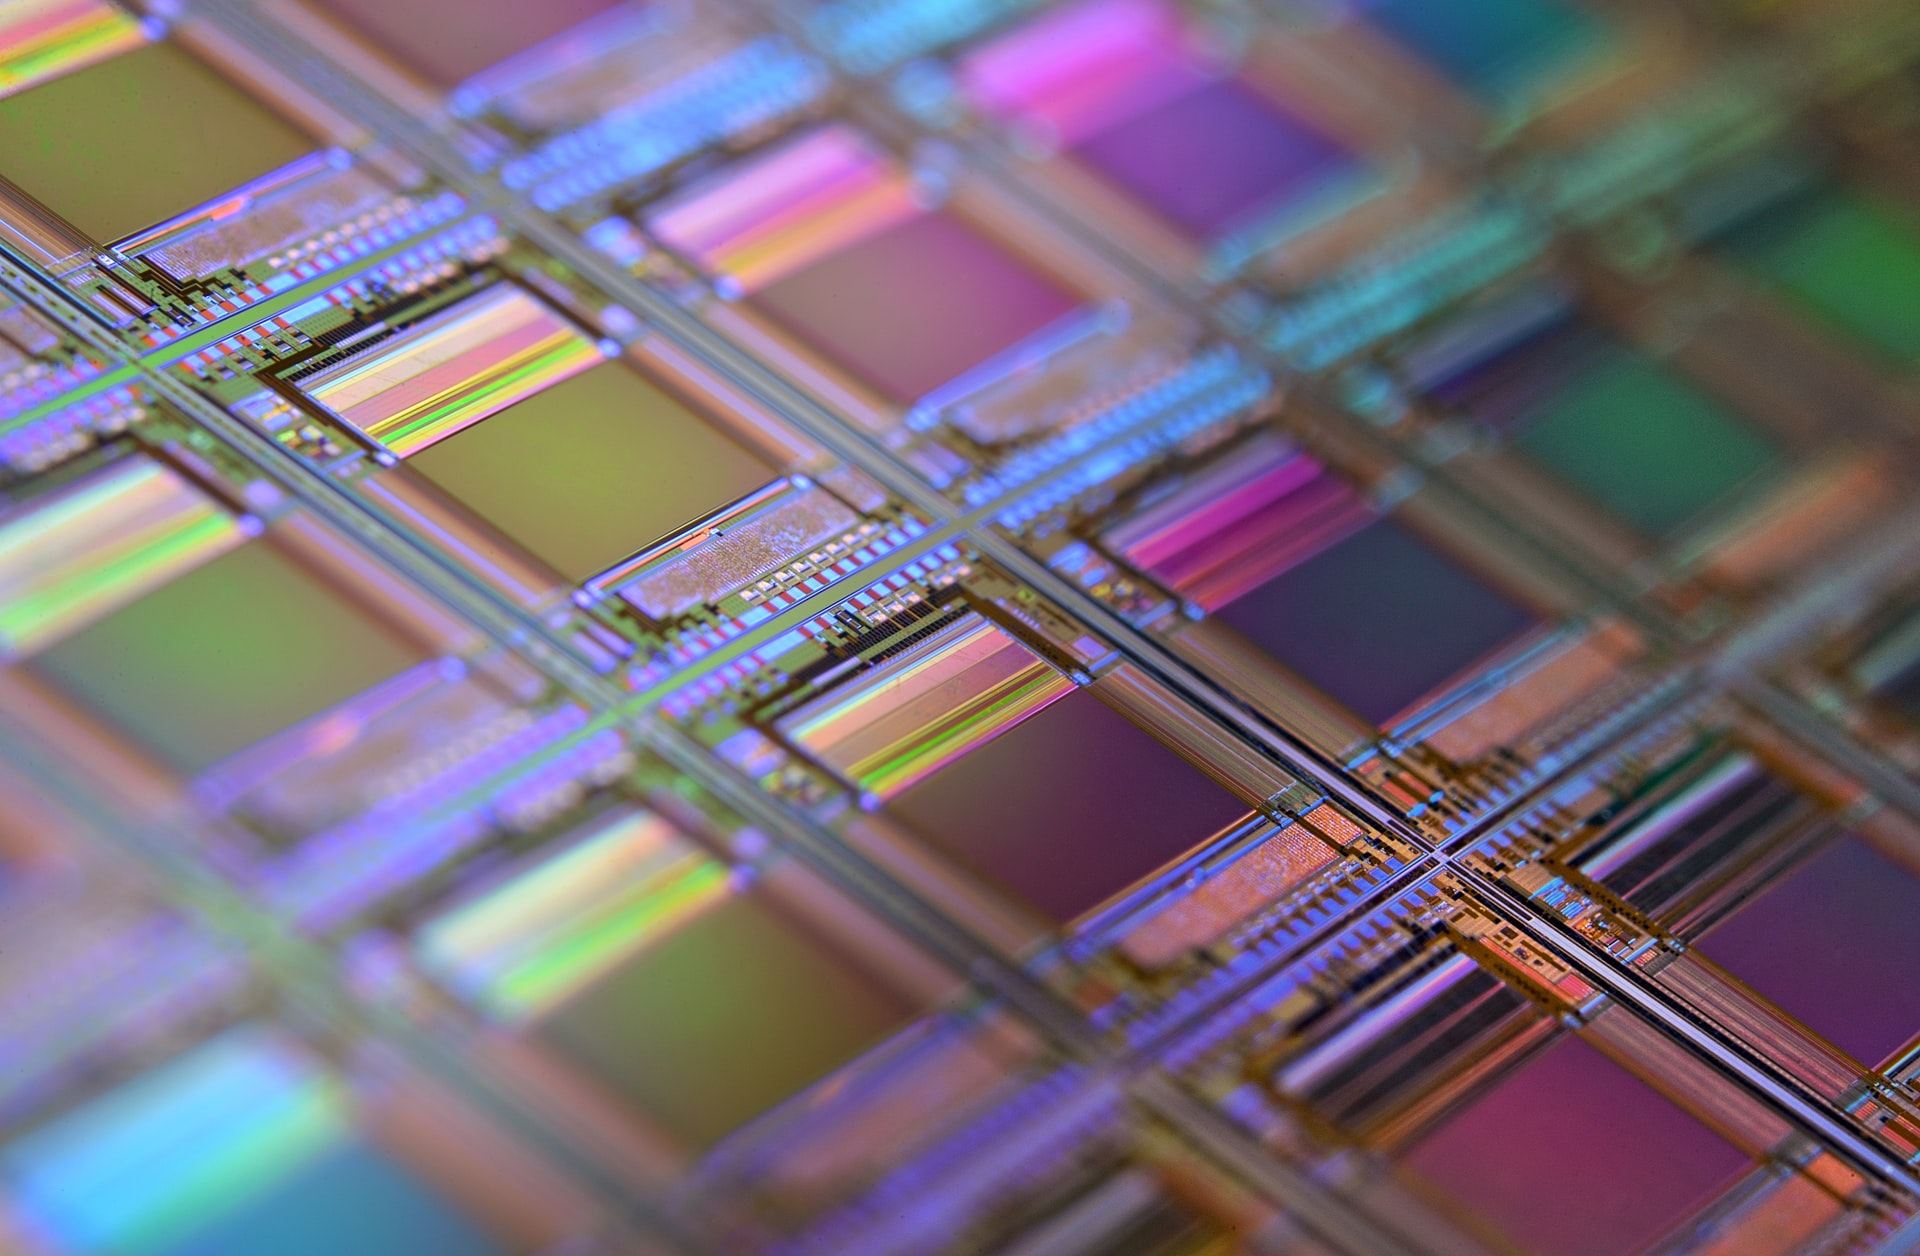 Semiconductor Industry Set for Another Year of Soaring Chip Prices, Already Raking in Record Revenues